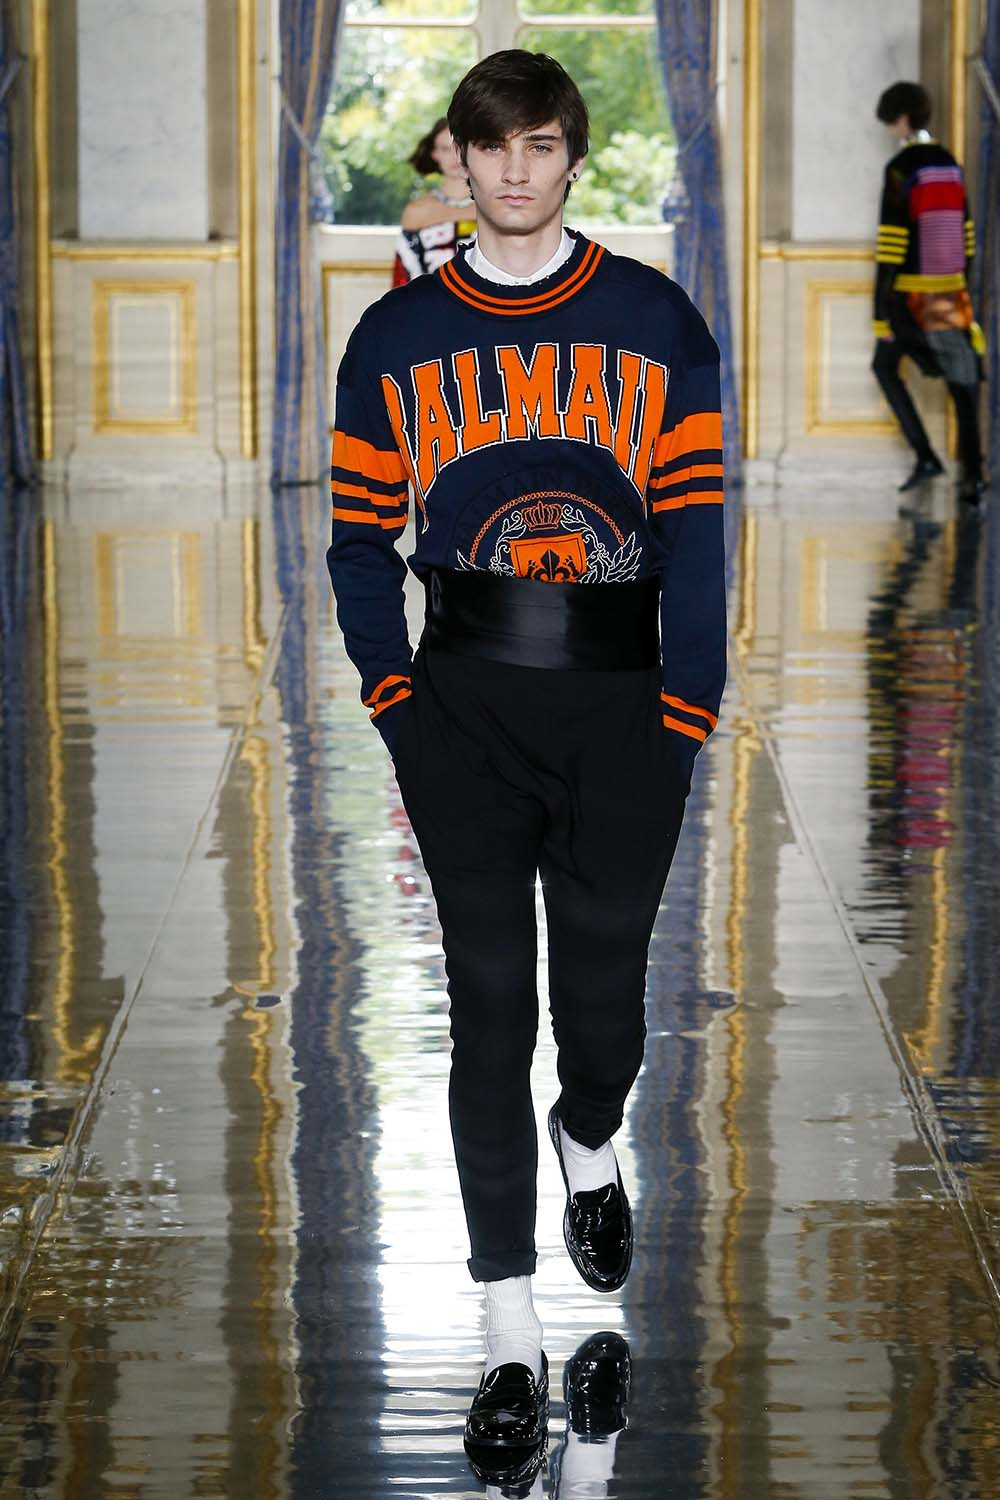 Balmain Paris Fashion Week Men's SS19 - Sagaboi - Look 46